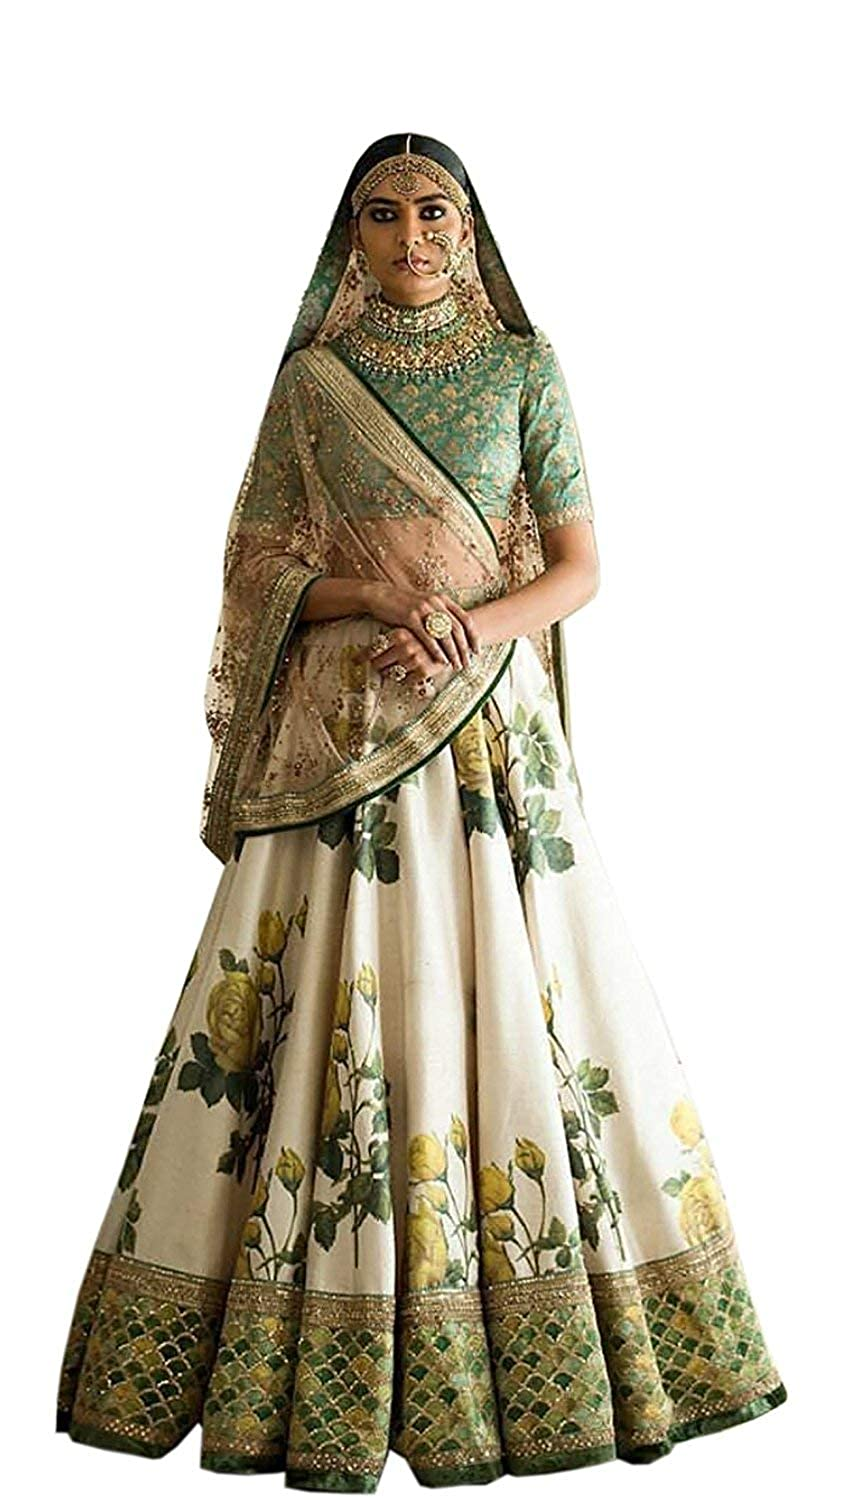 79db9caf47b0 FABPIXEL Women's Silk Embroidered Rose Floral Printed Lehenga Choli  (7002-7003,Yellow,Free Size): Amazon.in: Clothing & Accessories